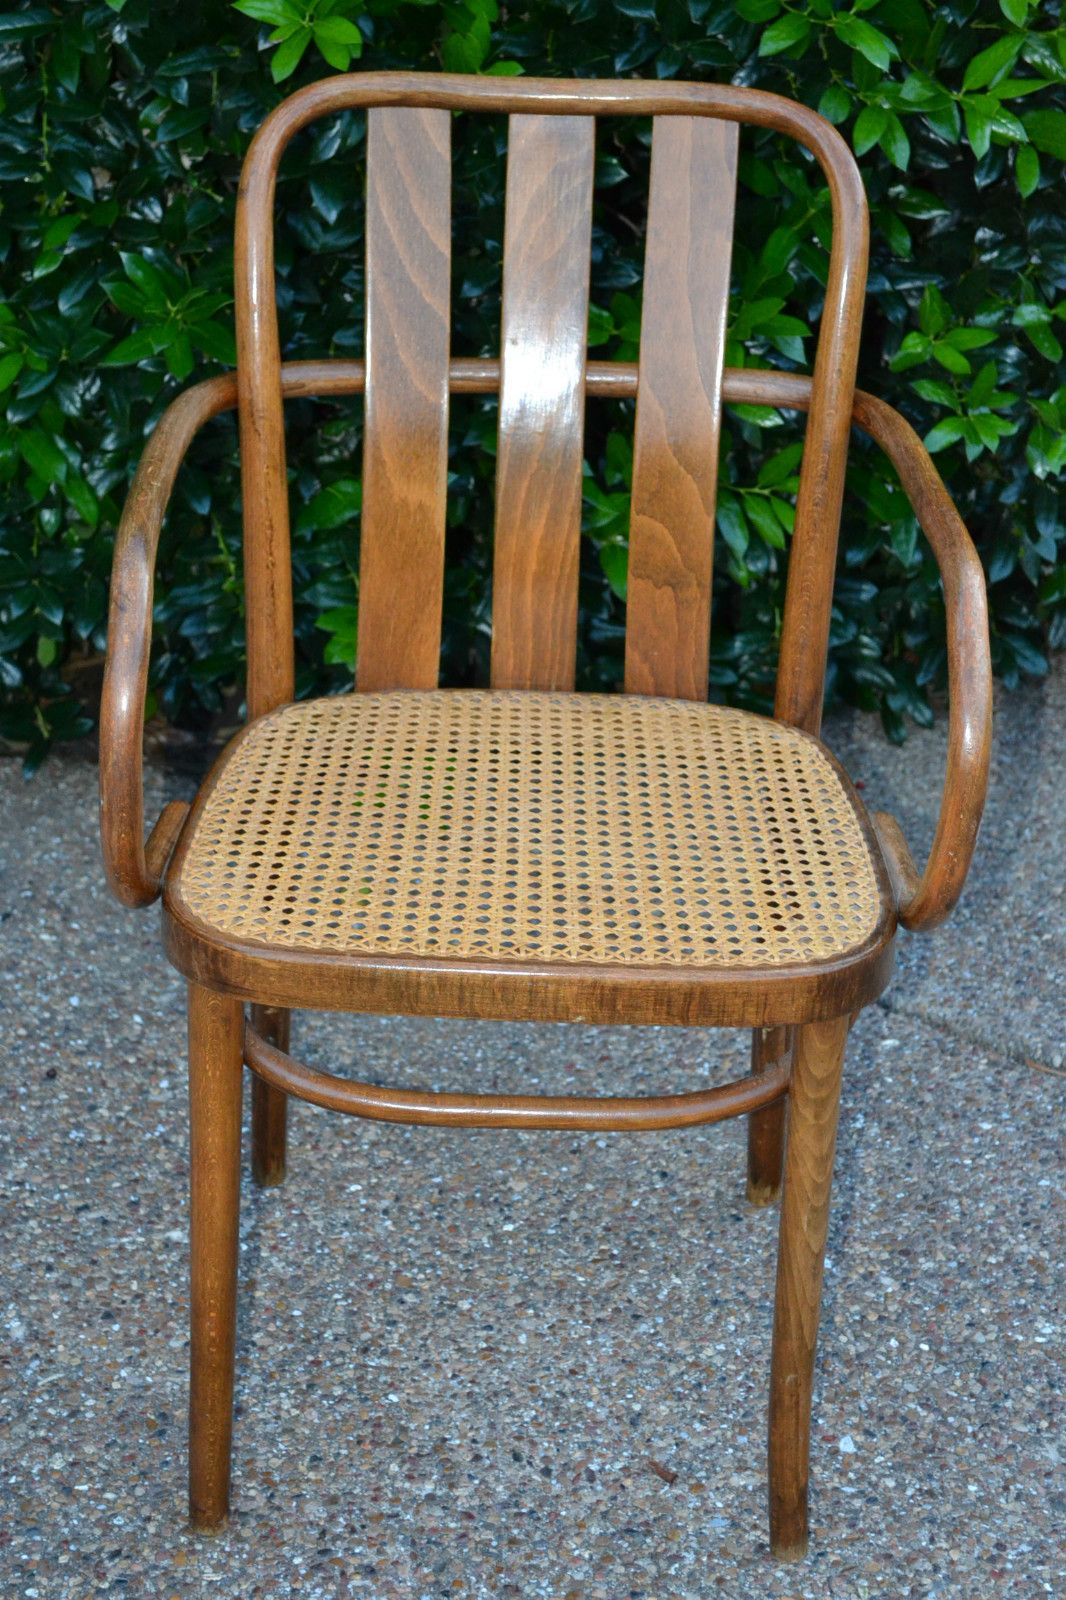 Antique cane chair styles - Antique Vintage Thonet Style Bentwood Cane Chair Original Cane Seat Poland Ebay